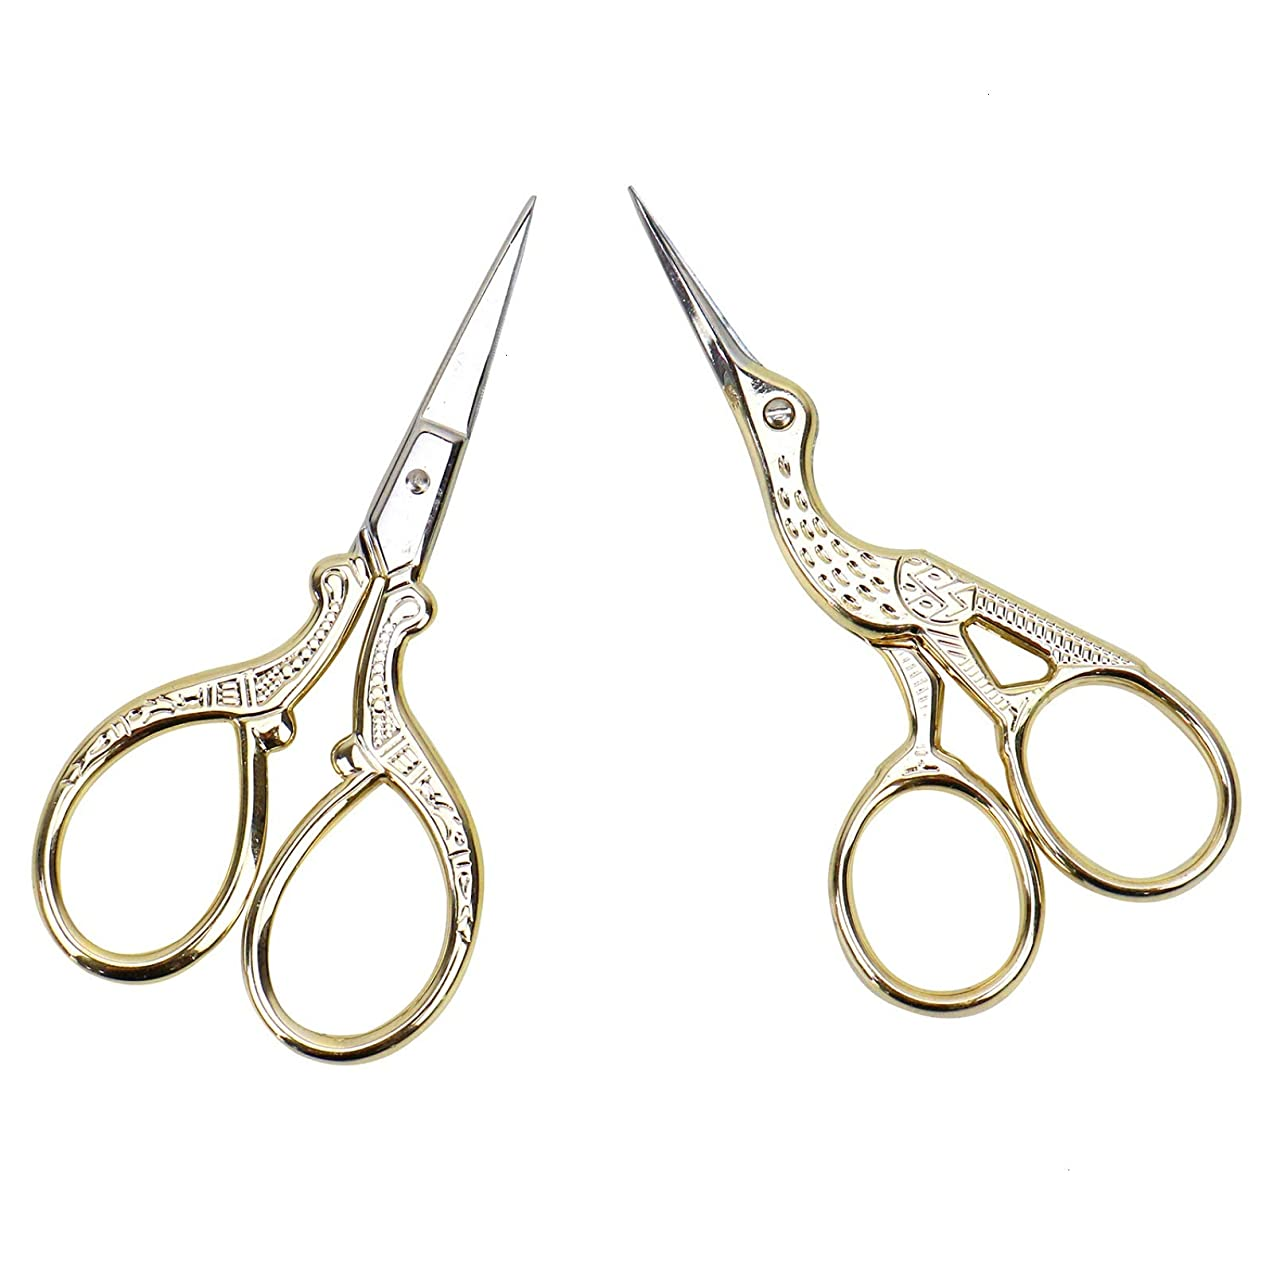 AQUEENLY Embroidery Scissors, Stainless Steel Sharp Stork Scissors for Sewing Crafting, Art Work, Threading, Needlework - DIY Tools Dressmaker Small Shears - 2 Pcs (3.6 Inches, Gold)